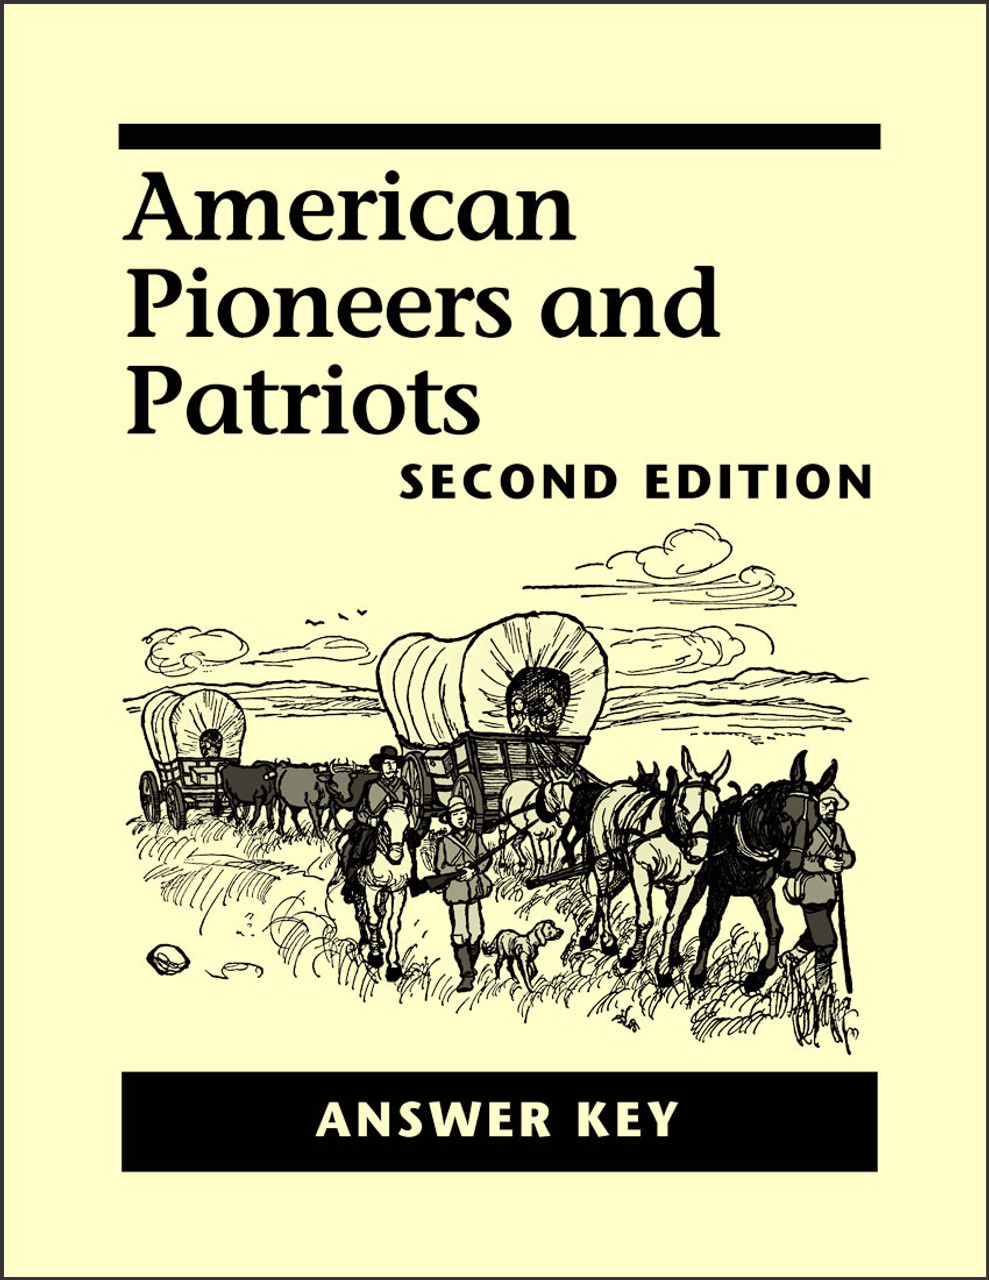 American Pioneers and Patriots, 2nd edition - Answer Key